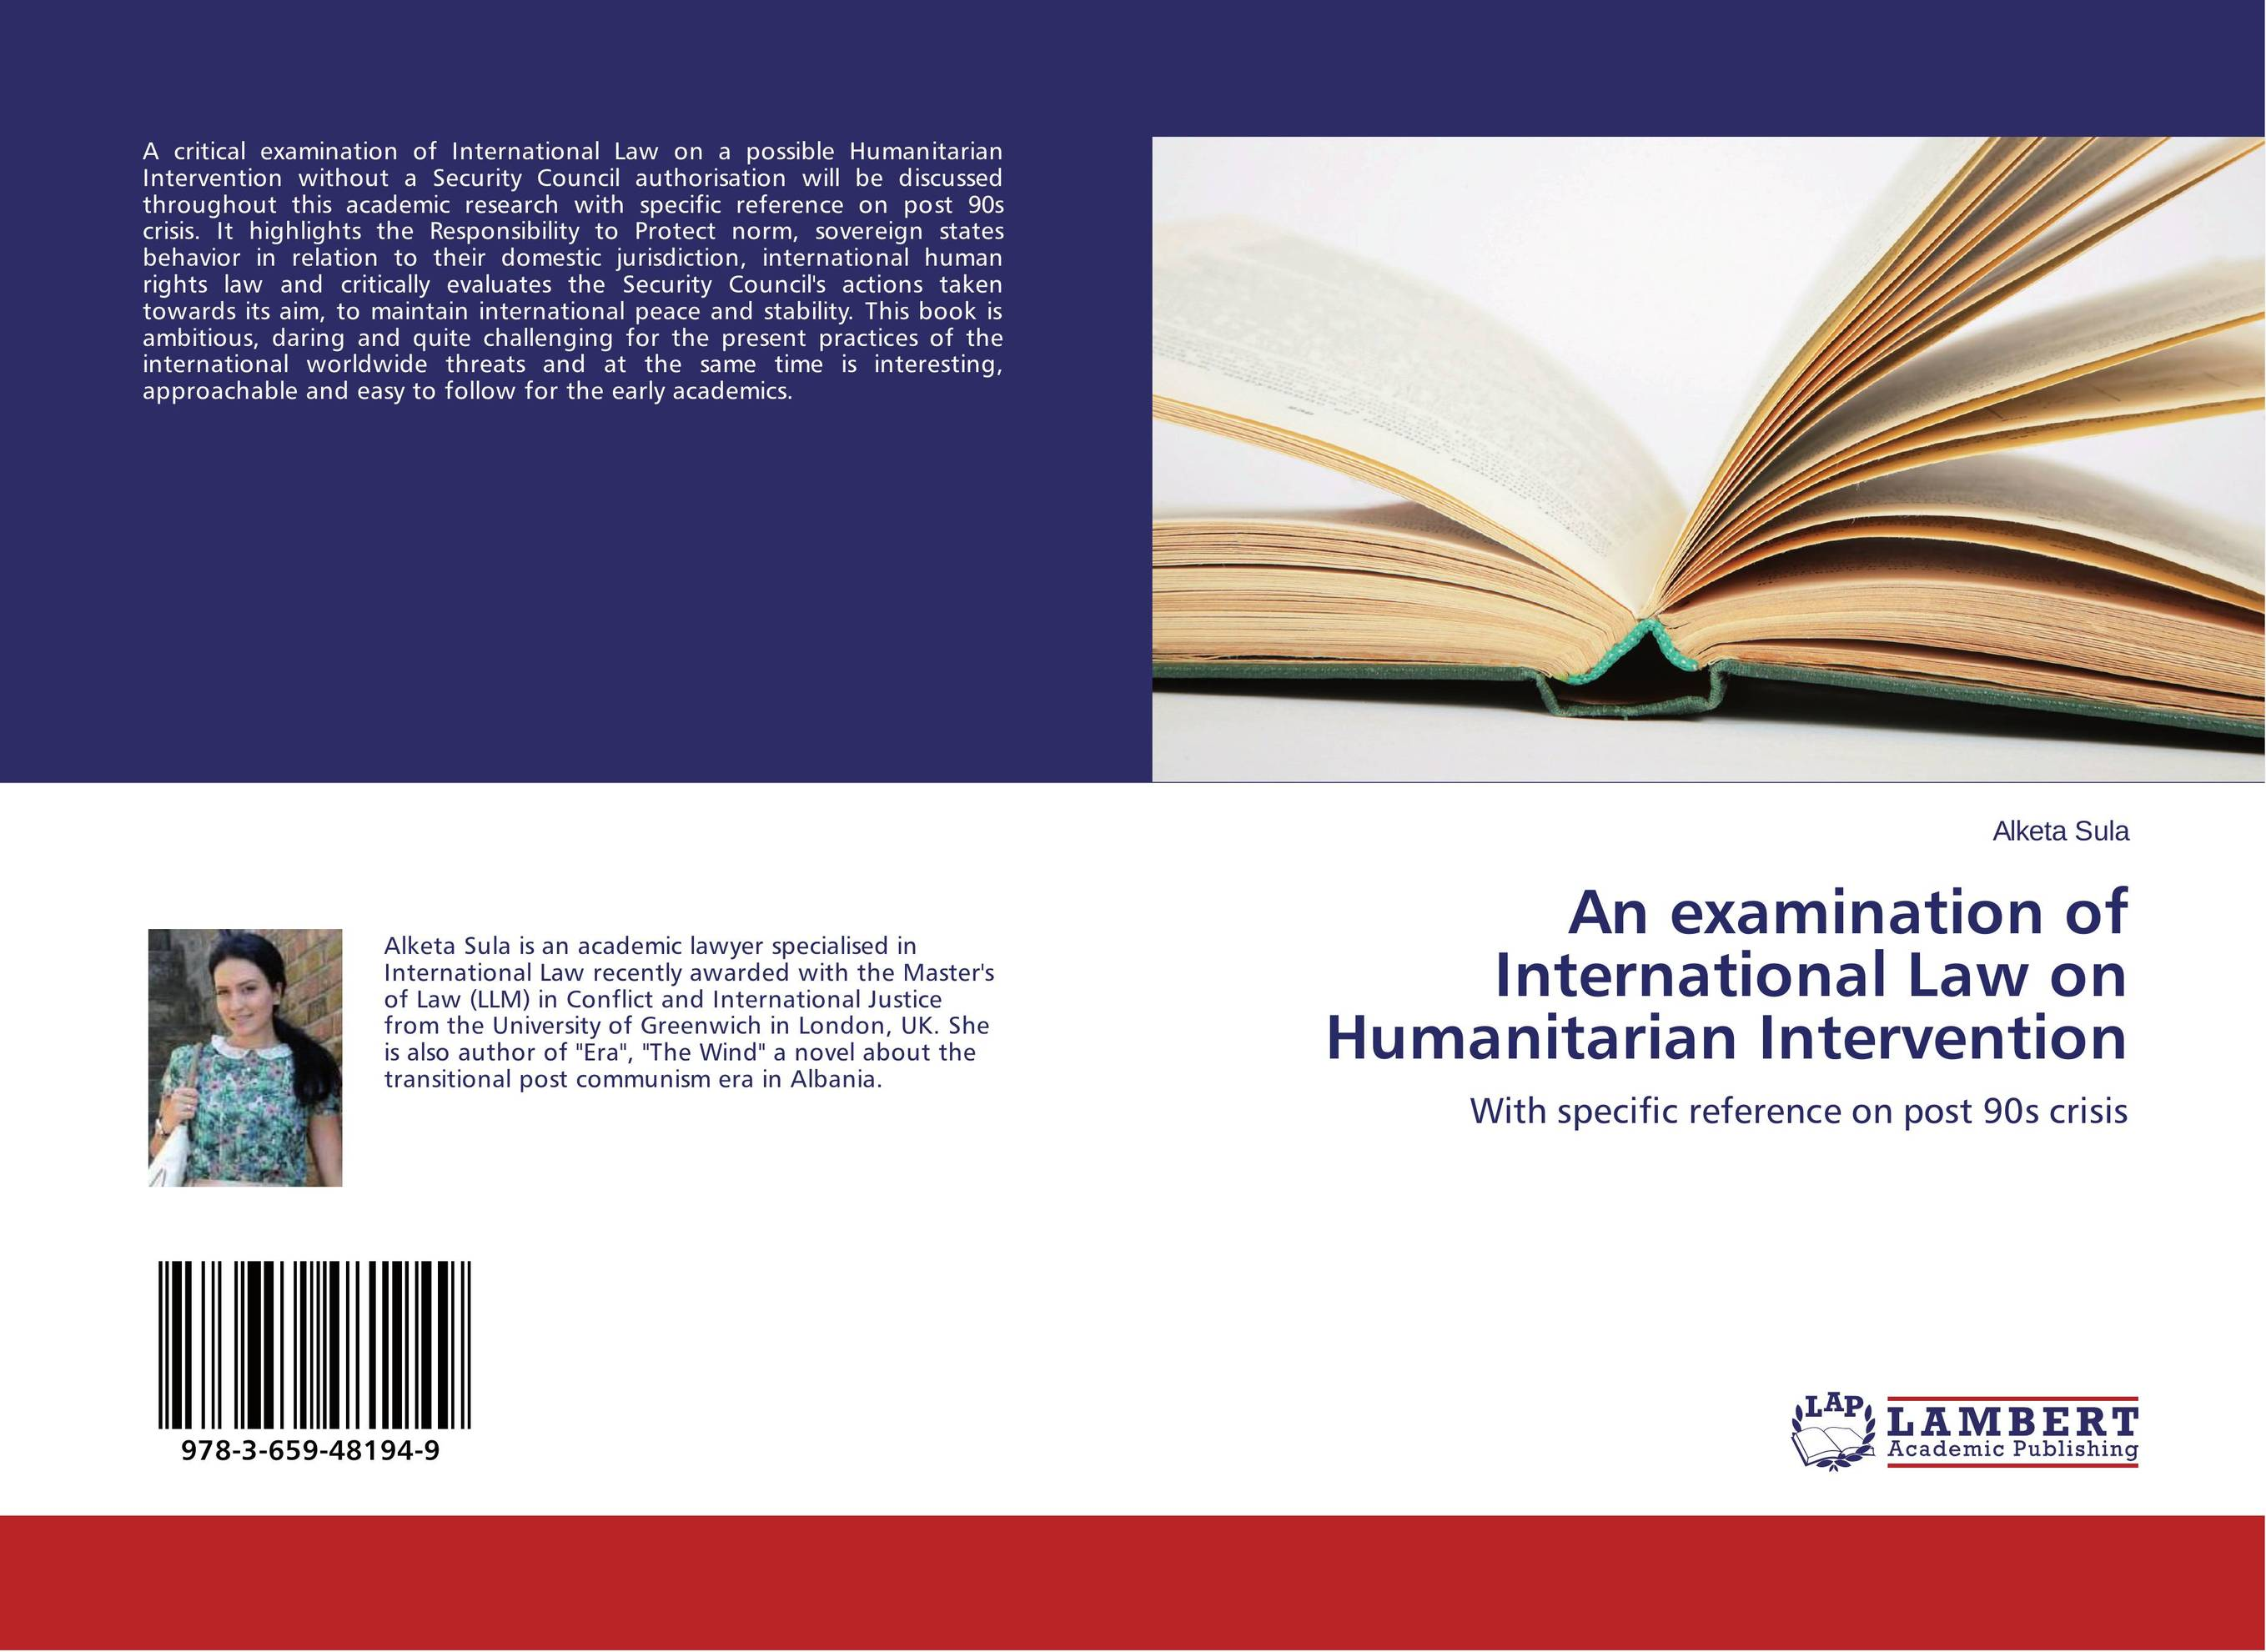 An examination of International Law on Humanitarian Intervention protective security law